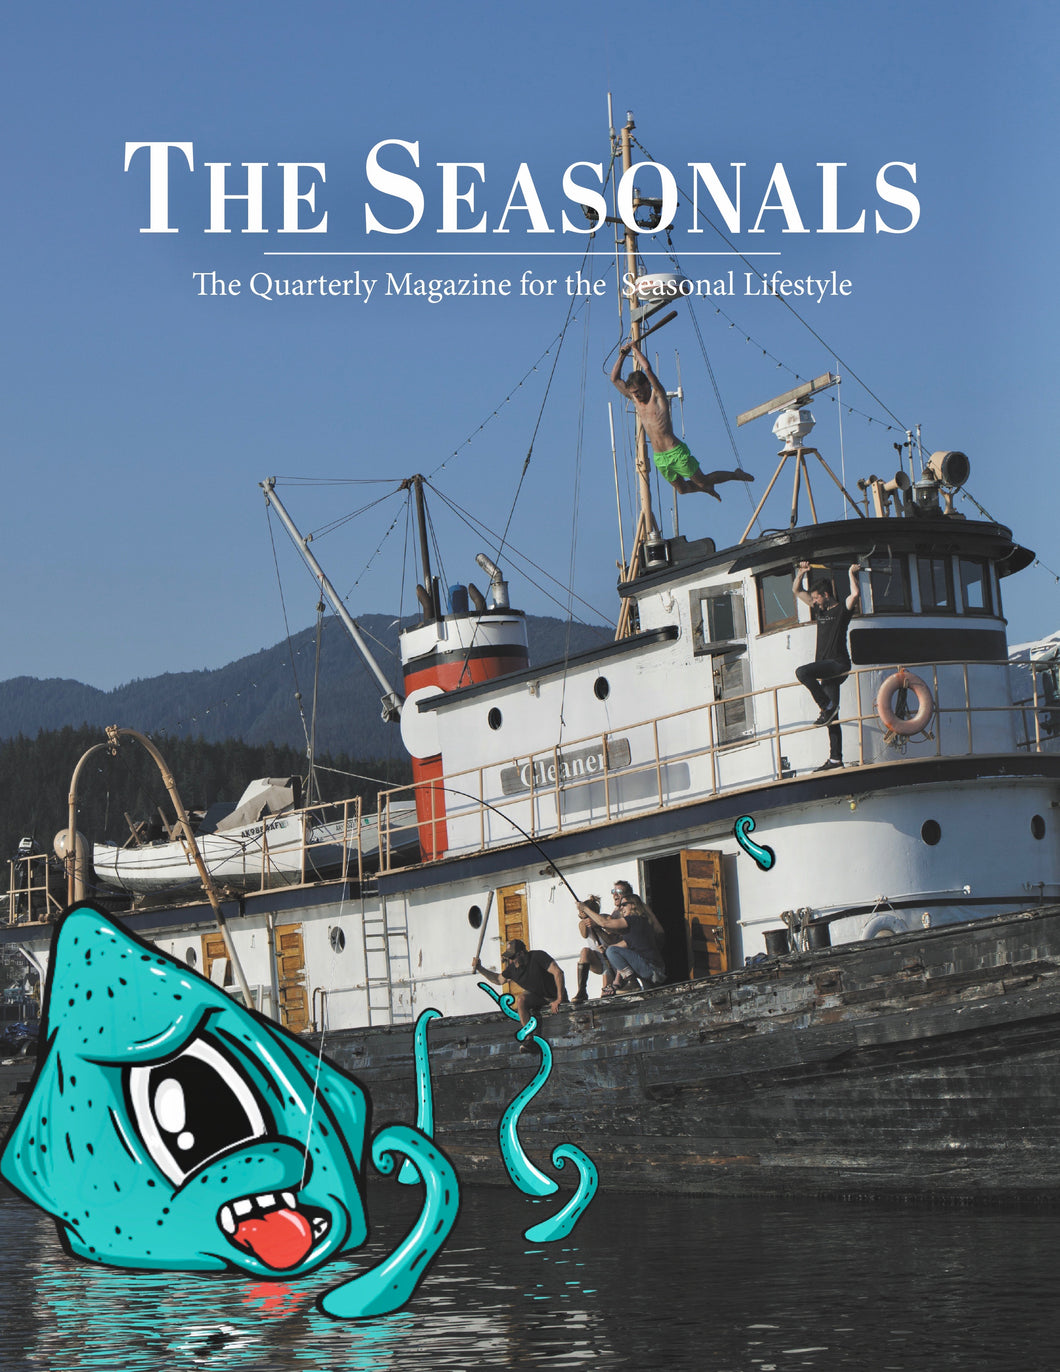 The Seasonals Magazine